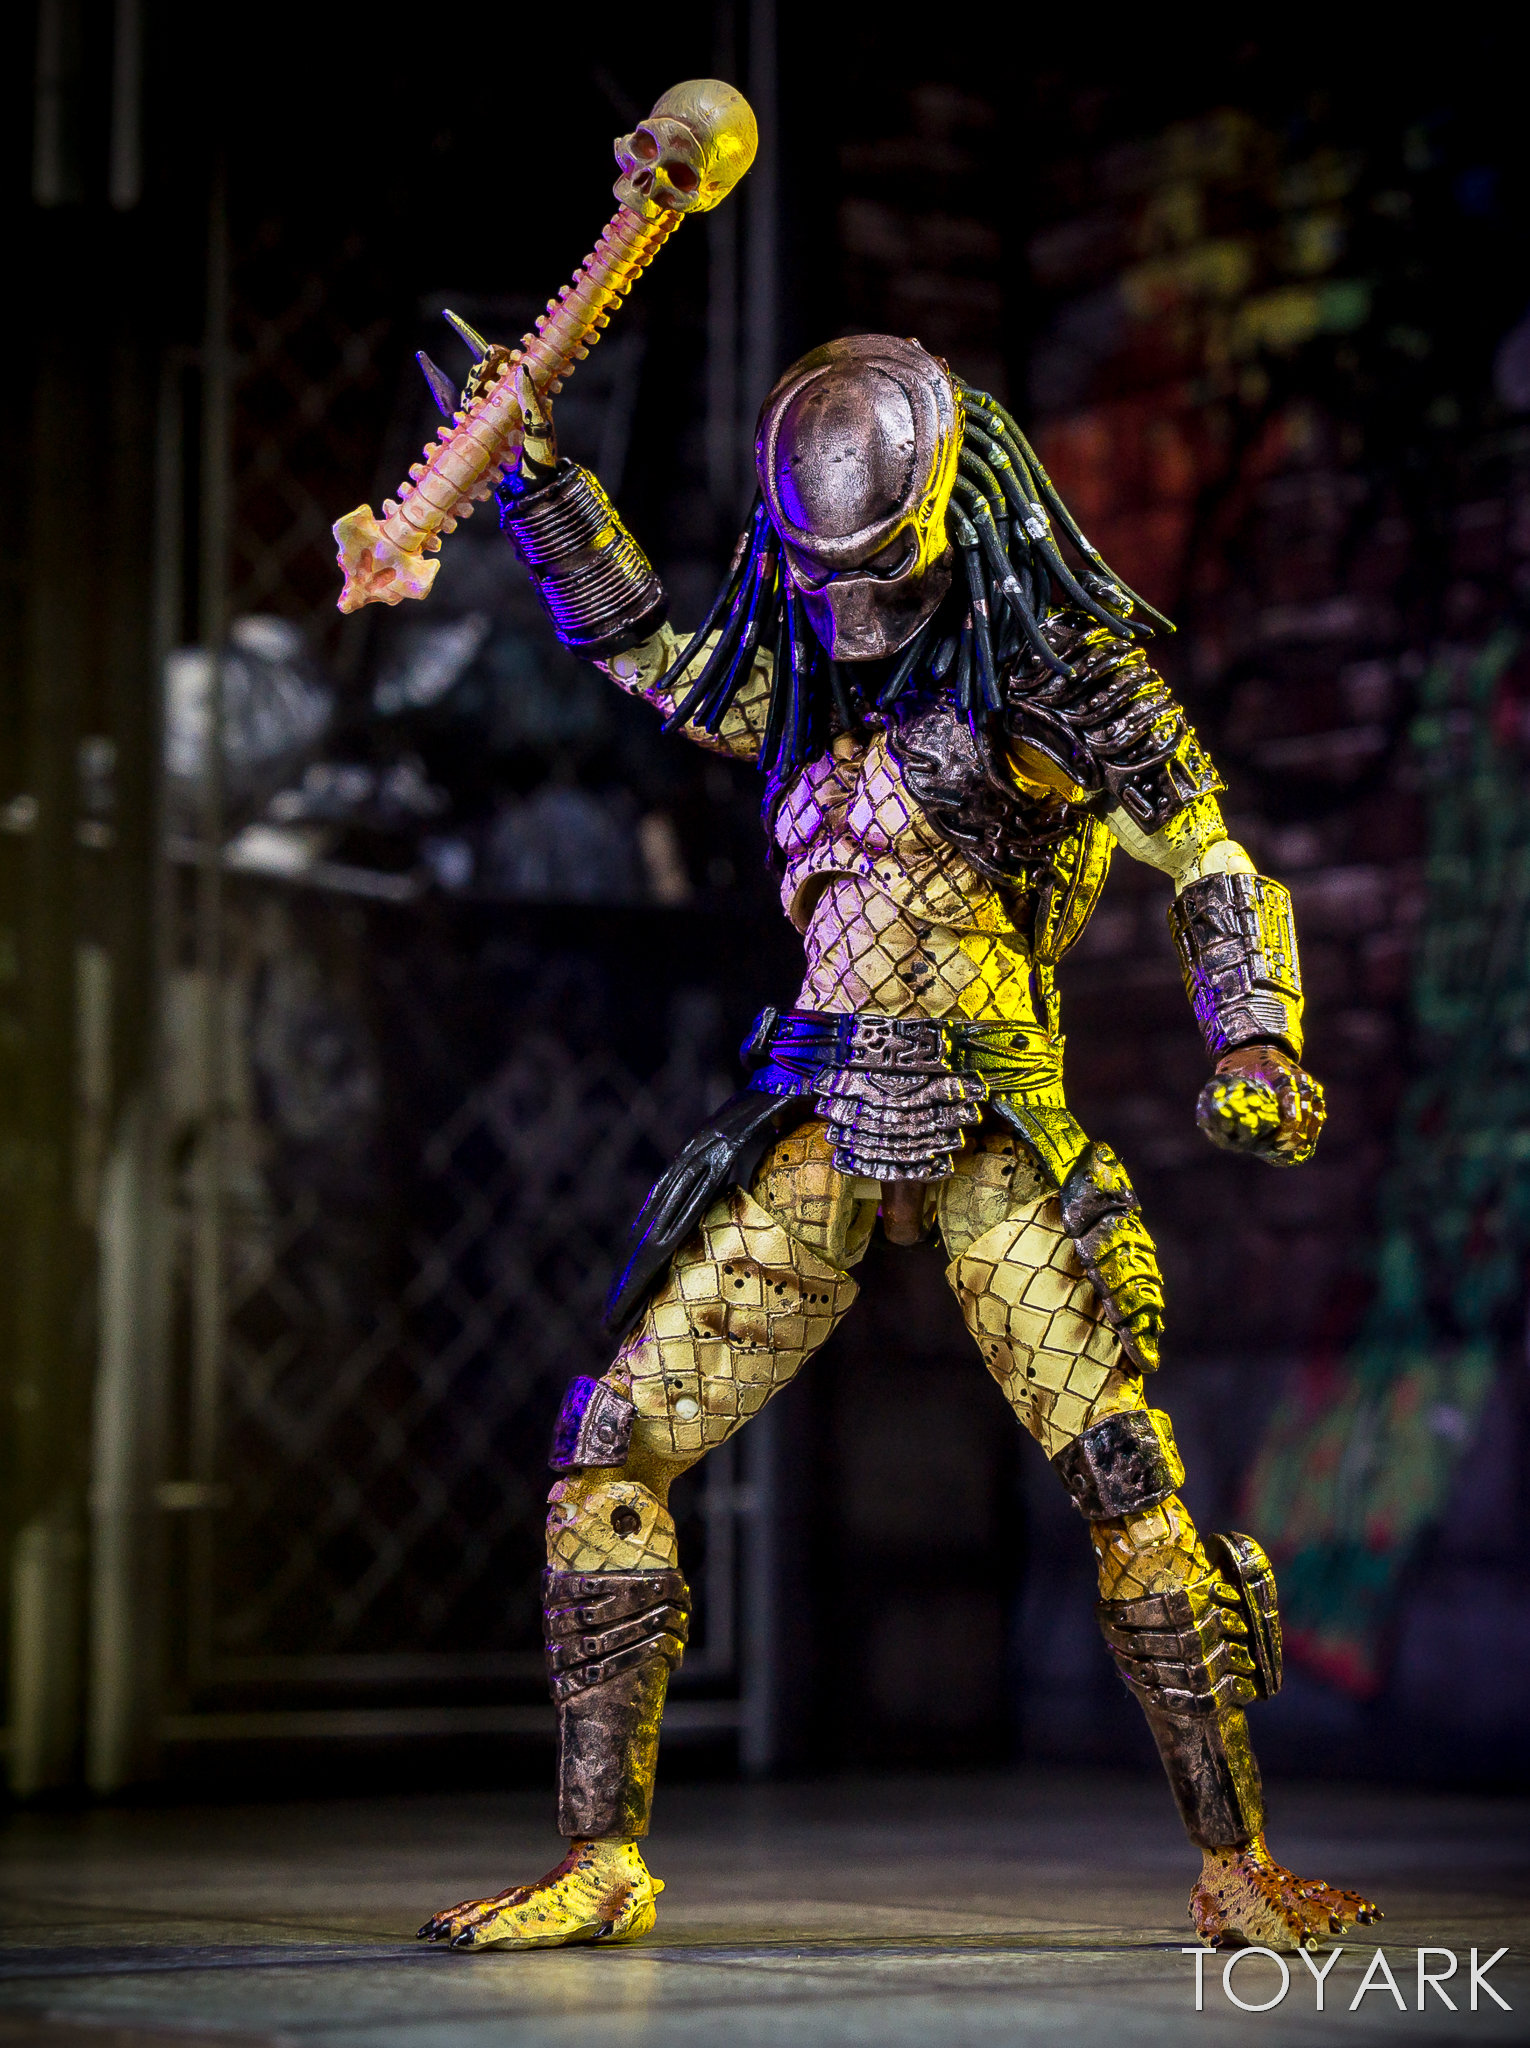 http://news.toyark.com/wp-content/uploads/sites/4/2018/03/Hiya-Predator-2-Figures-029.jpg